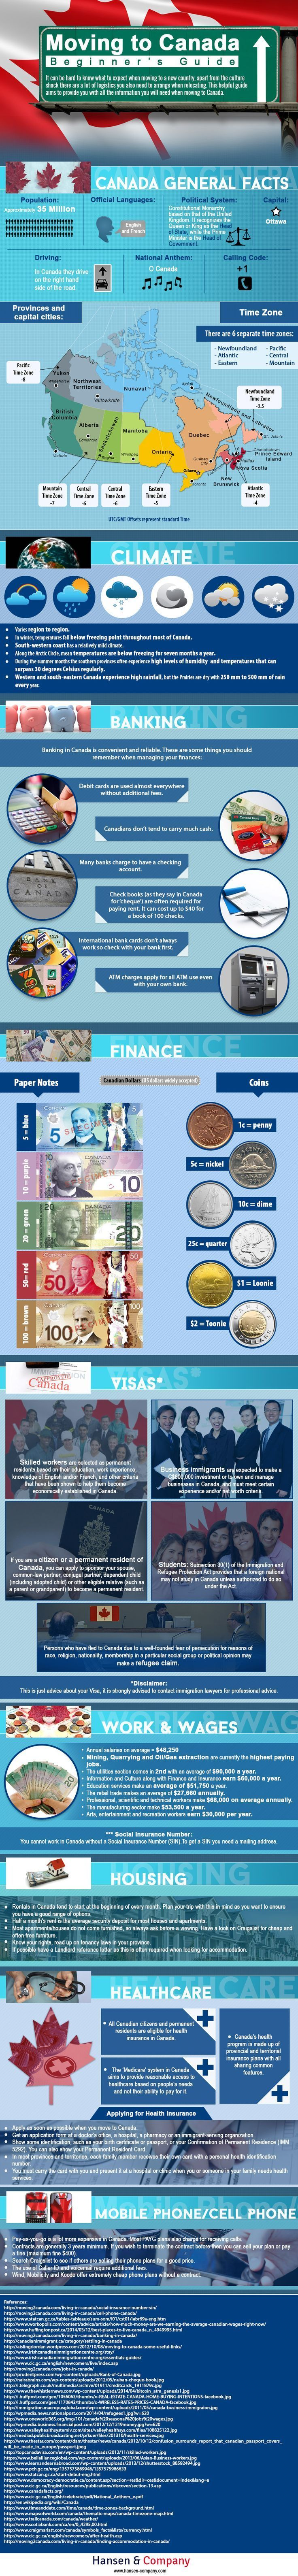 Moving To Canada Beginner S Guide Infographic With Images Canada Travel Moving To Canada